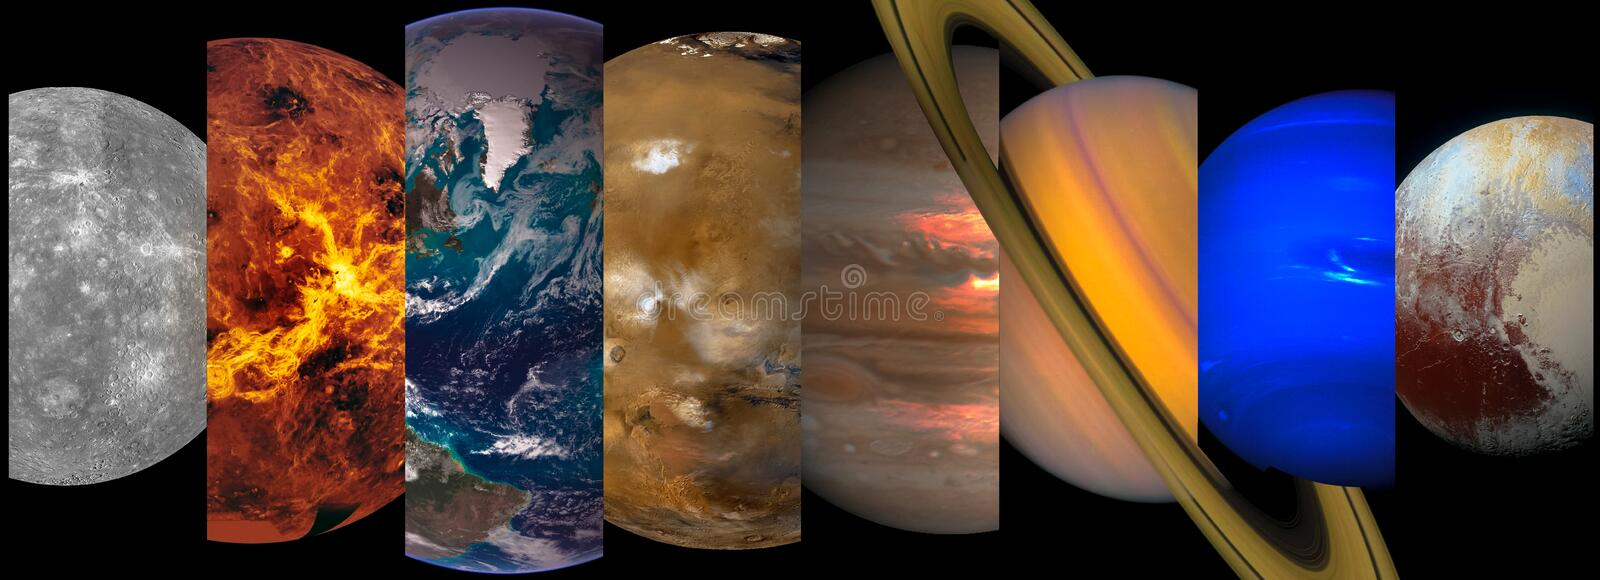 Collage slicing planets of the solar system. On a black background. Mercury, Venus, Earth, Mars, Jupiter, Saturn, Uranus, Pluto. Elements of this image royalty free stock images